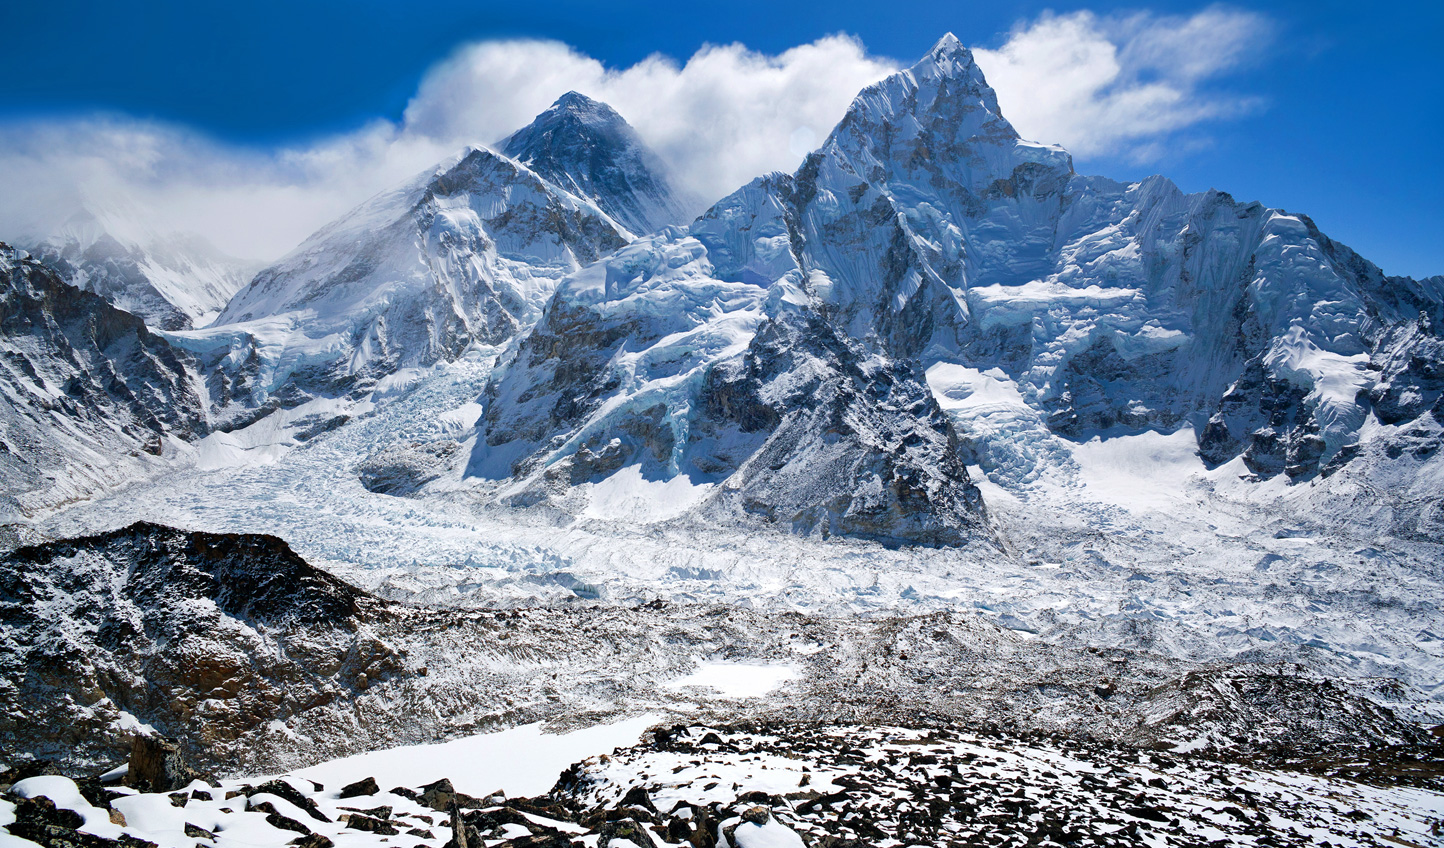 An unbeatable breakfast view awaits you at the top of Everest Base Camp